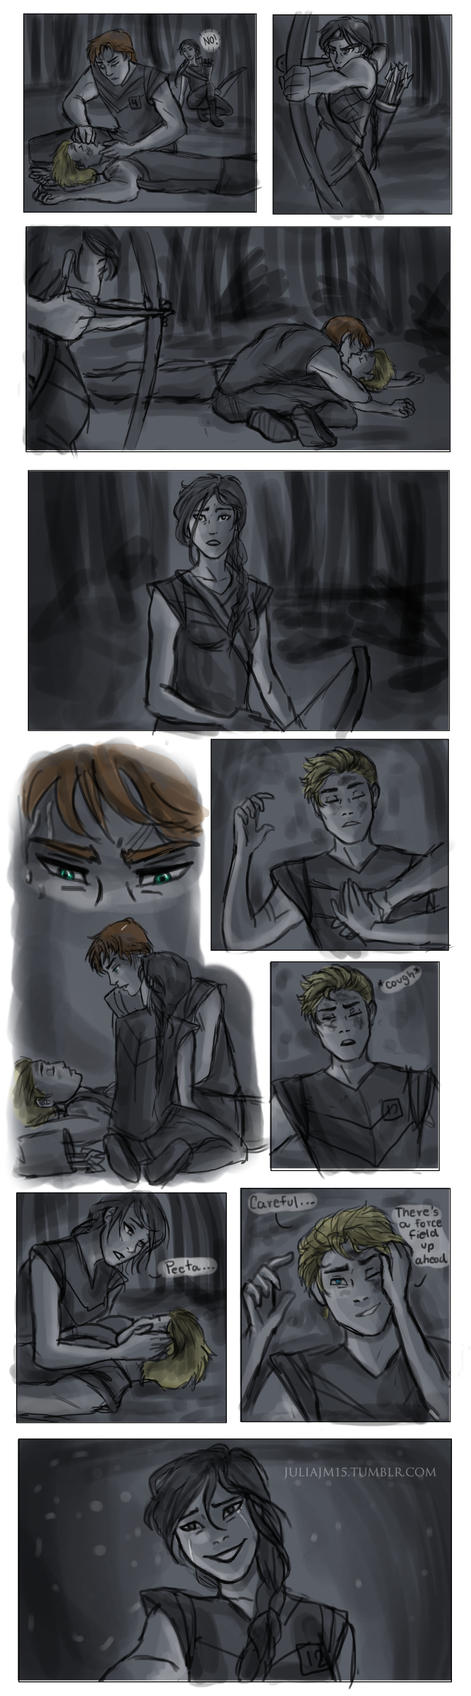 Saving Peeta by juliajm15